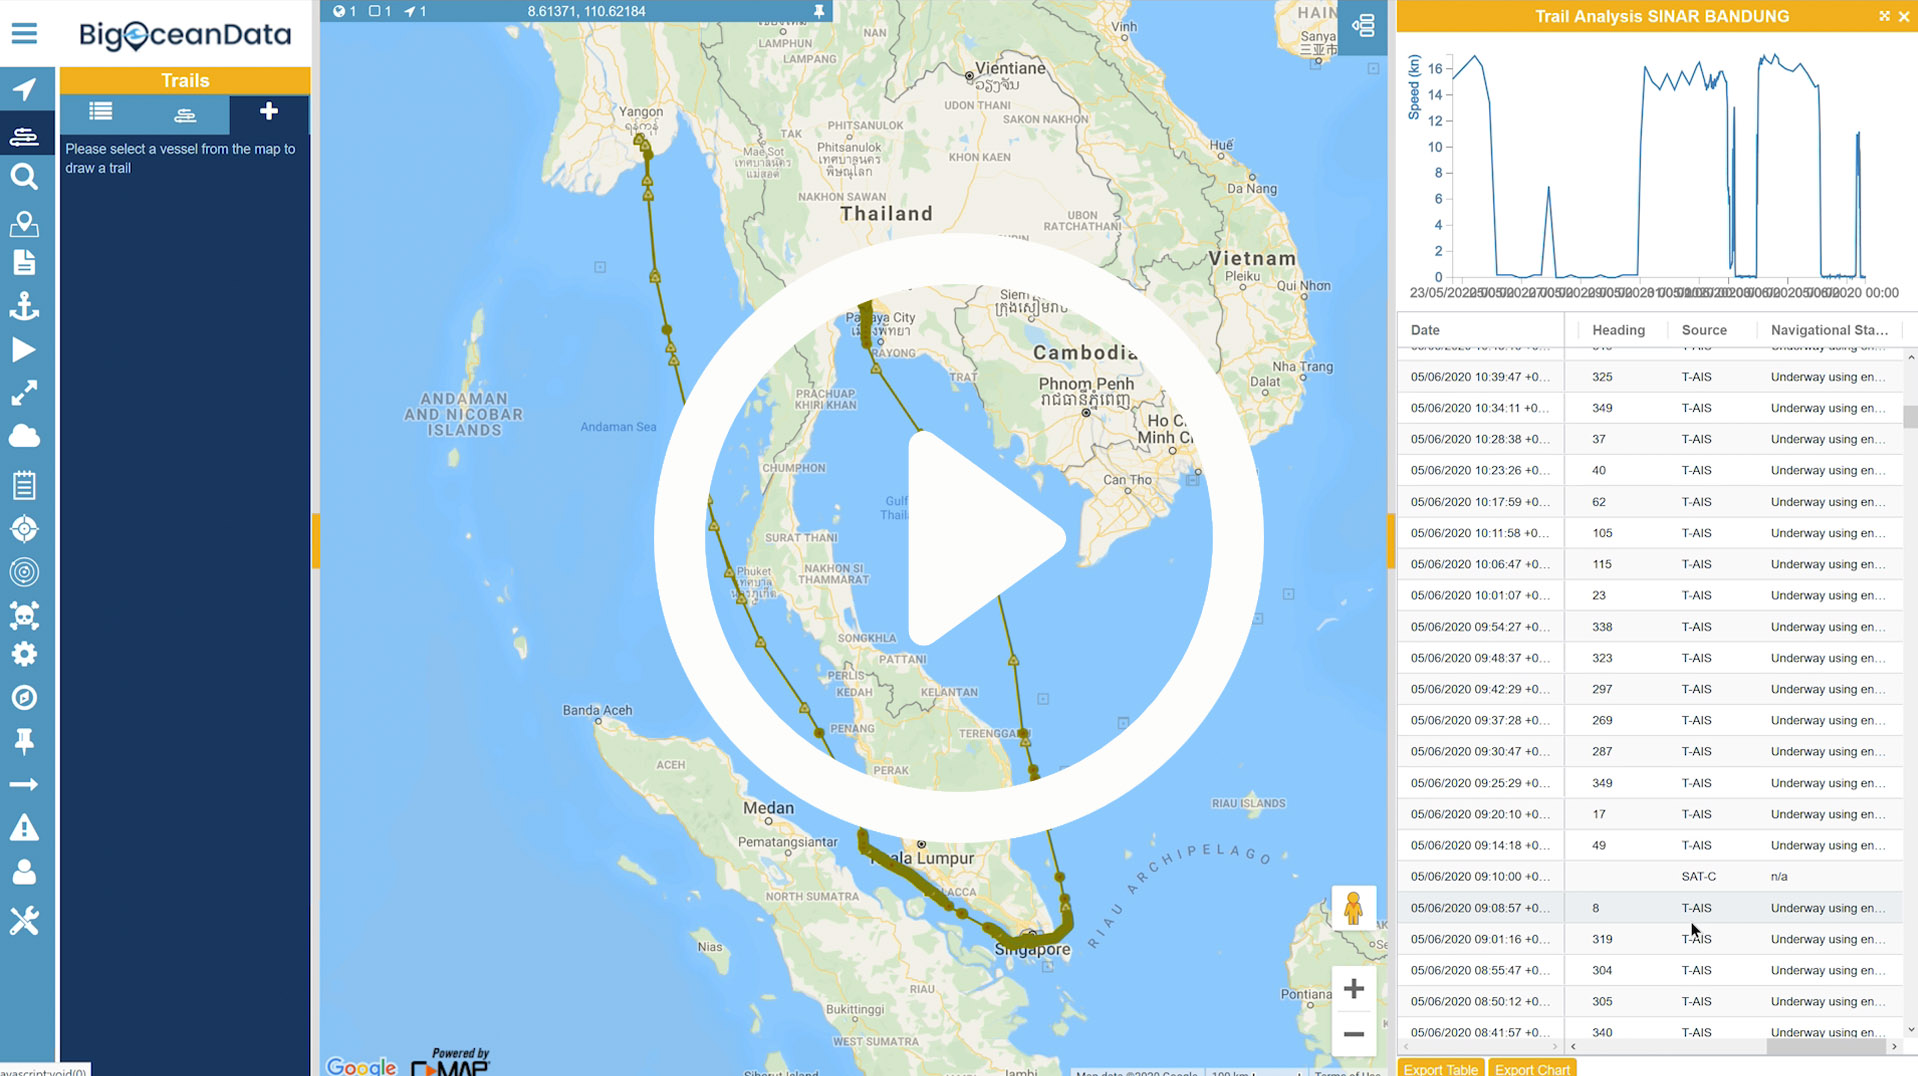 AIS Vessel Tracking